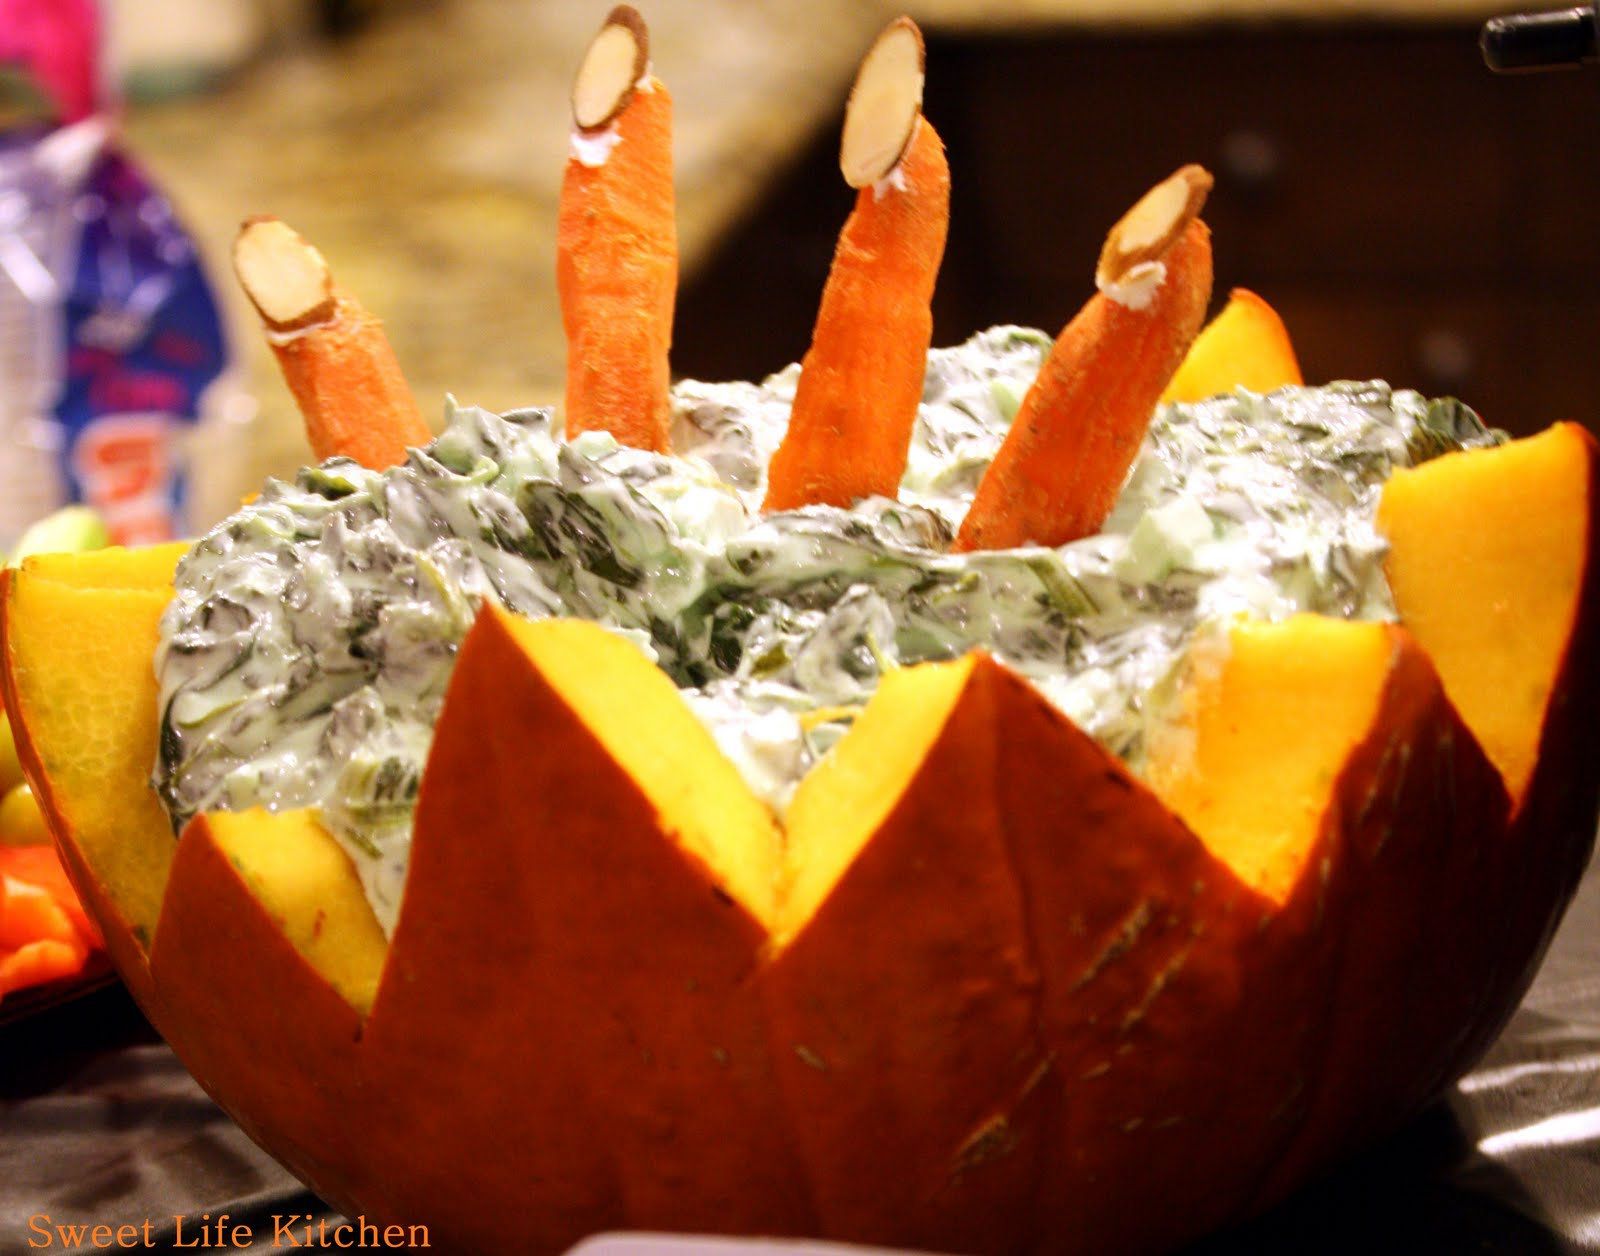 sweet life kitchen: cemetary spinach dip~ halloween party recipes